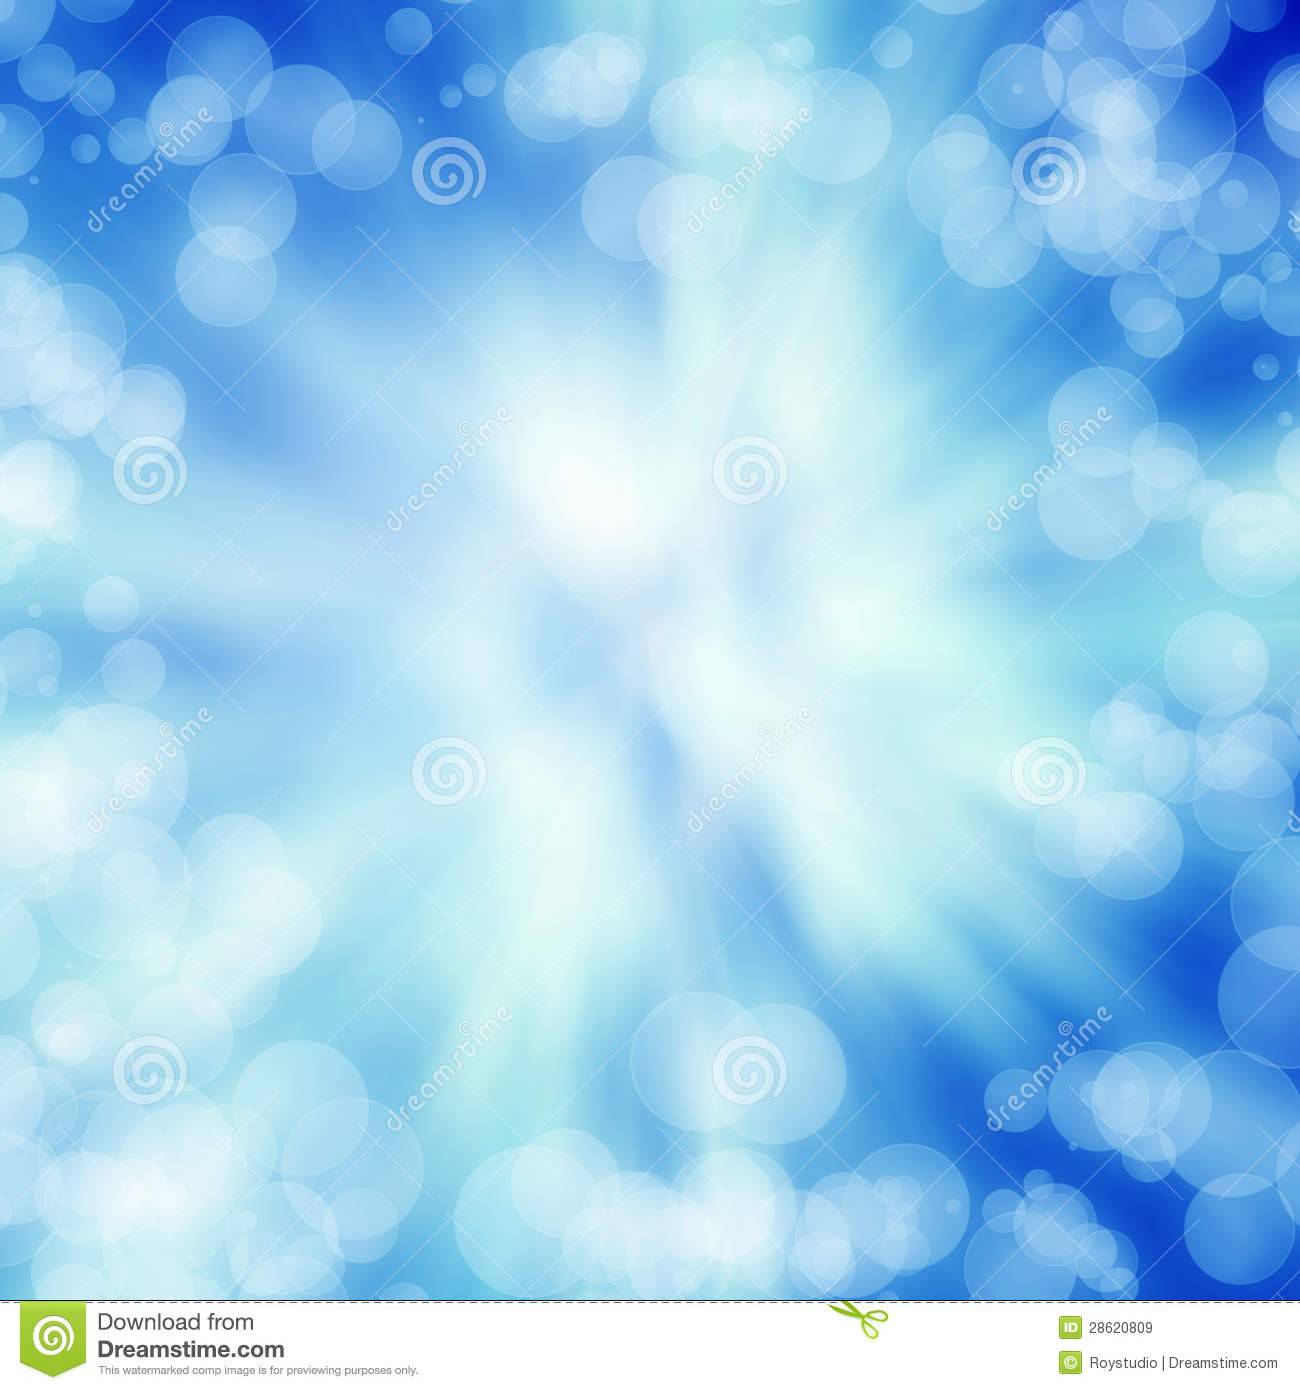 Bright Blue Abstract Backgrond Texture Royalty Free Stock